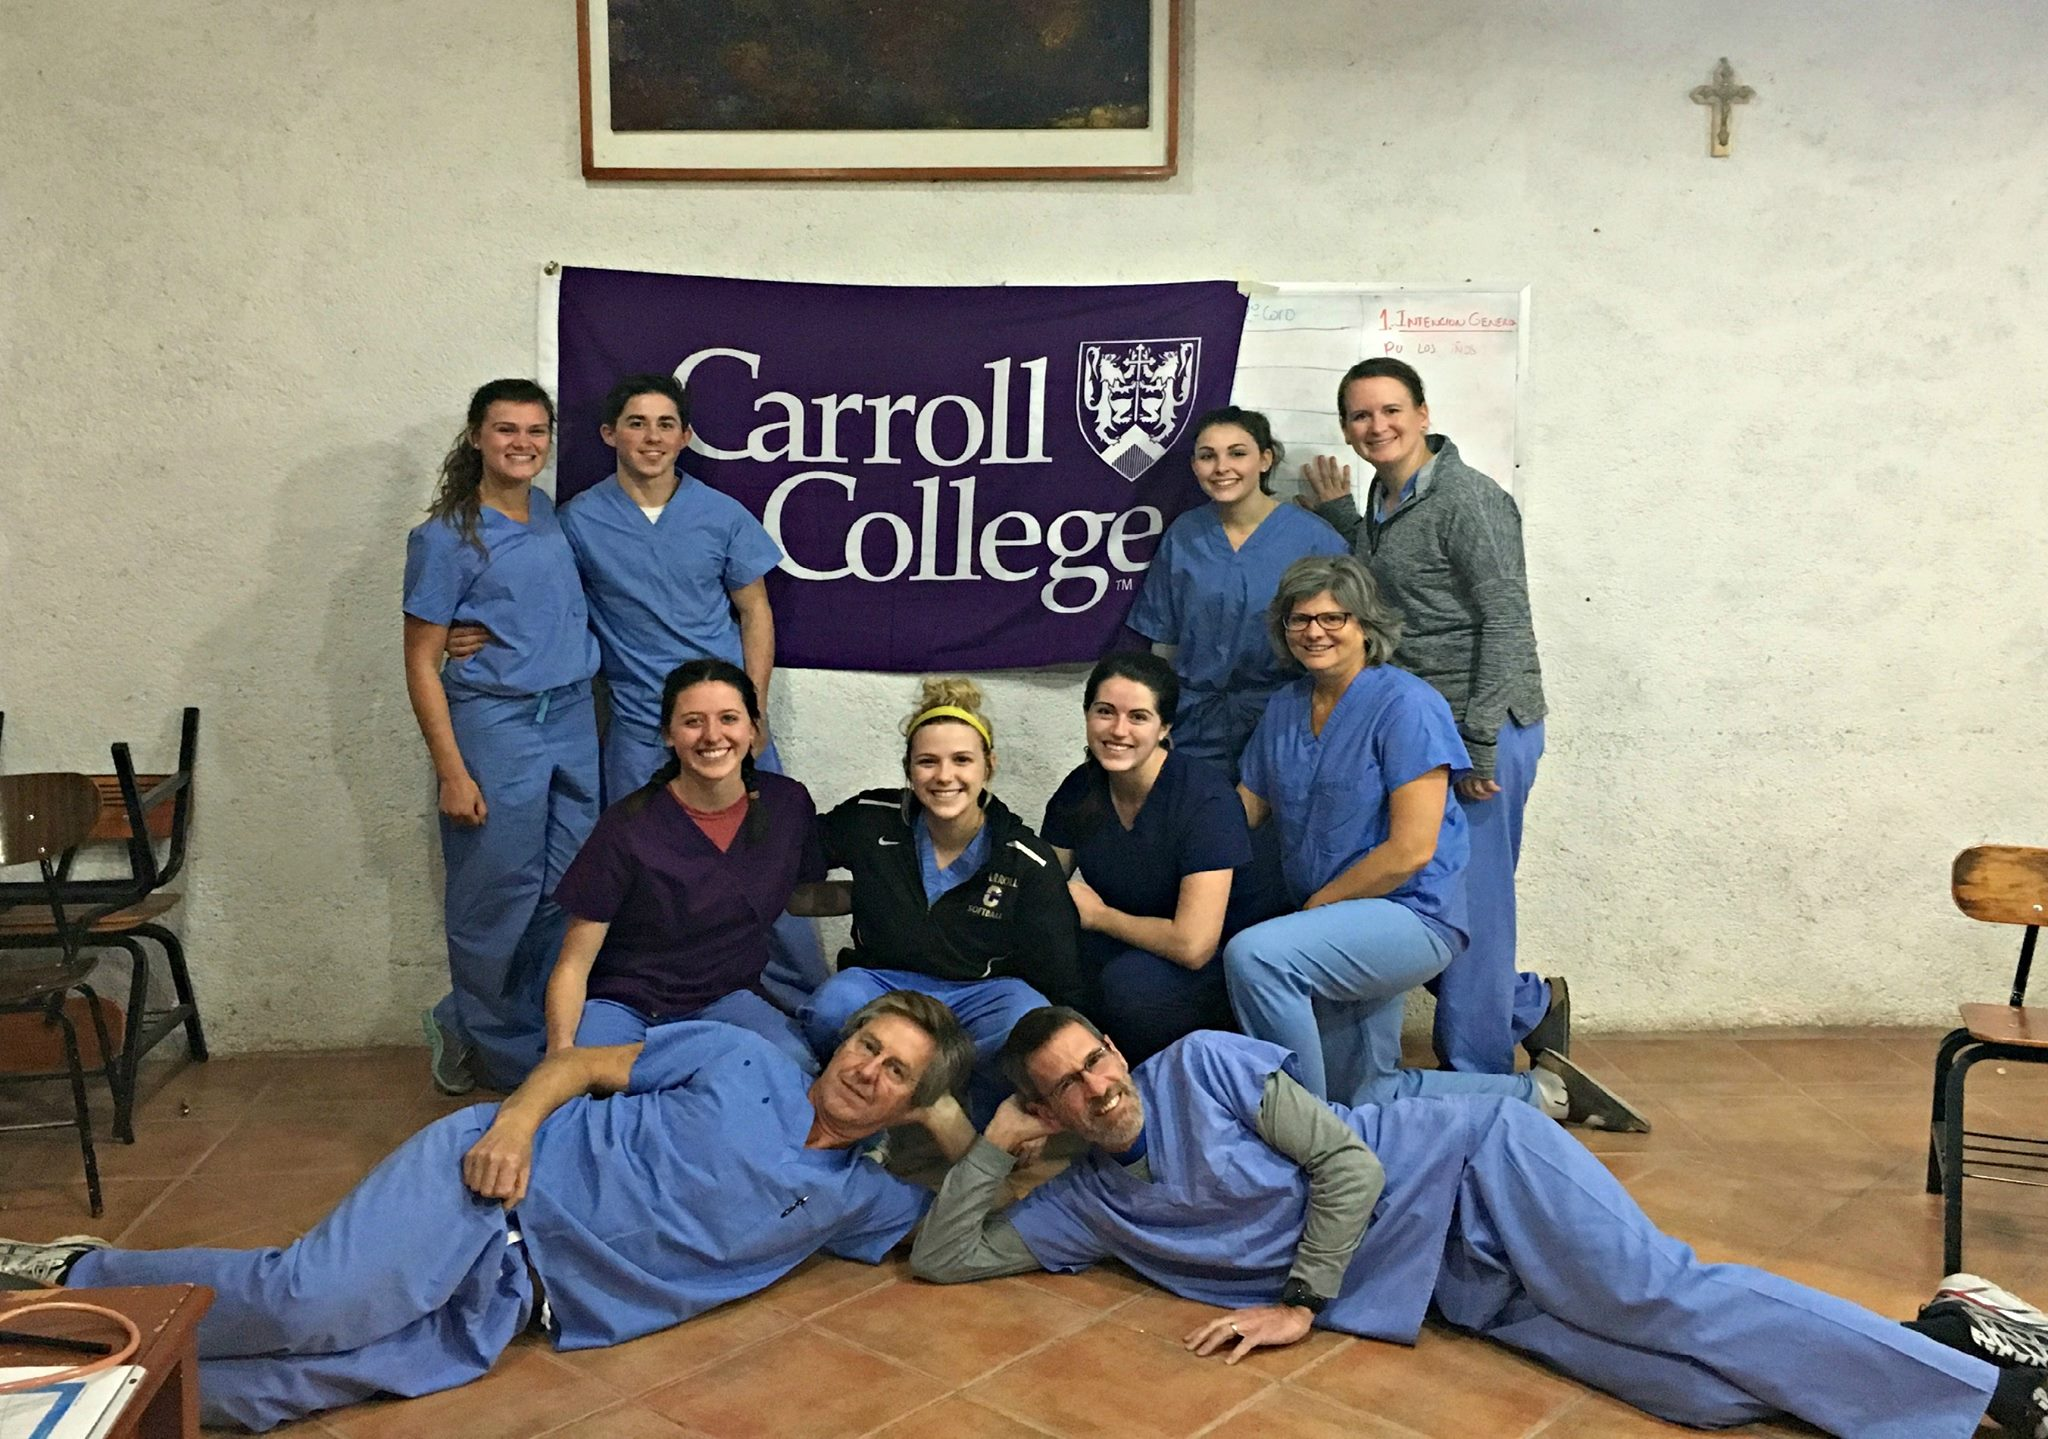 Carroll College Nursing Students pose next to a Carroll College Flag